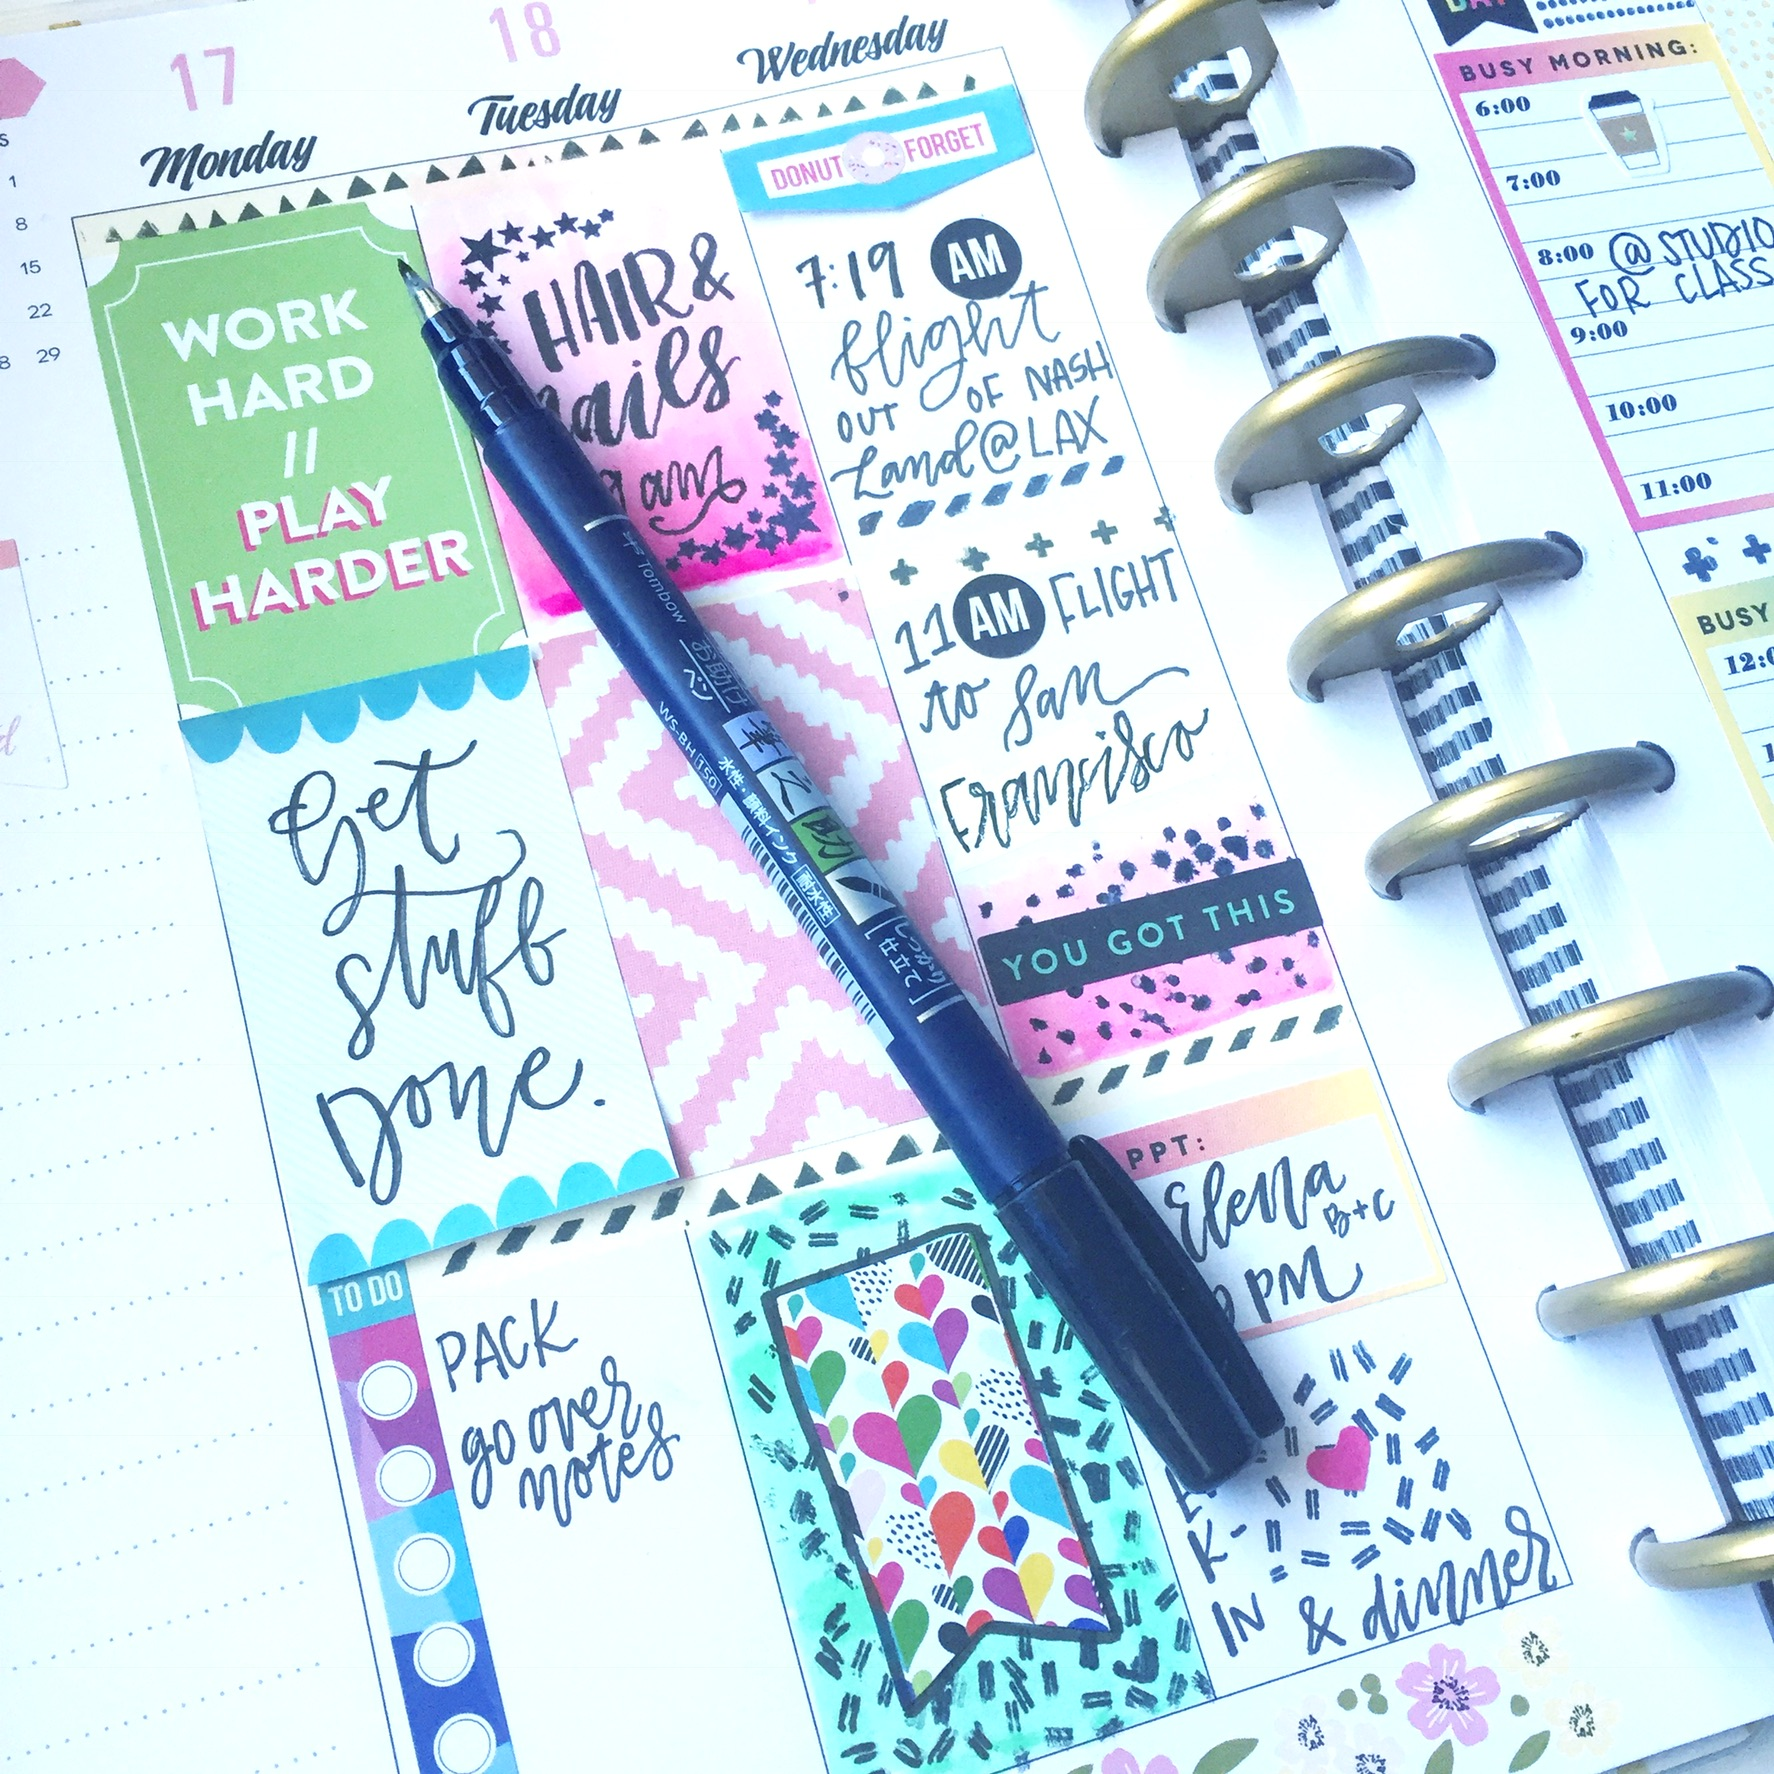 Learn some techniques for how to add color and patterns to your planner with @waffleflower and @tombowusa products. Lauren of @renmadecalligraphy (renmadecalligraphy.com) loves to give lettering and crafting tips!